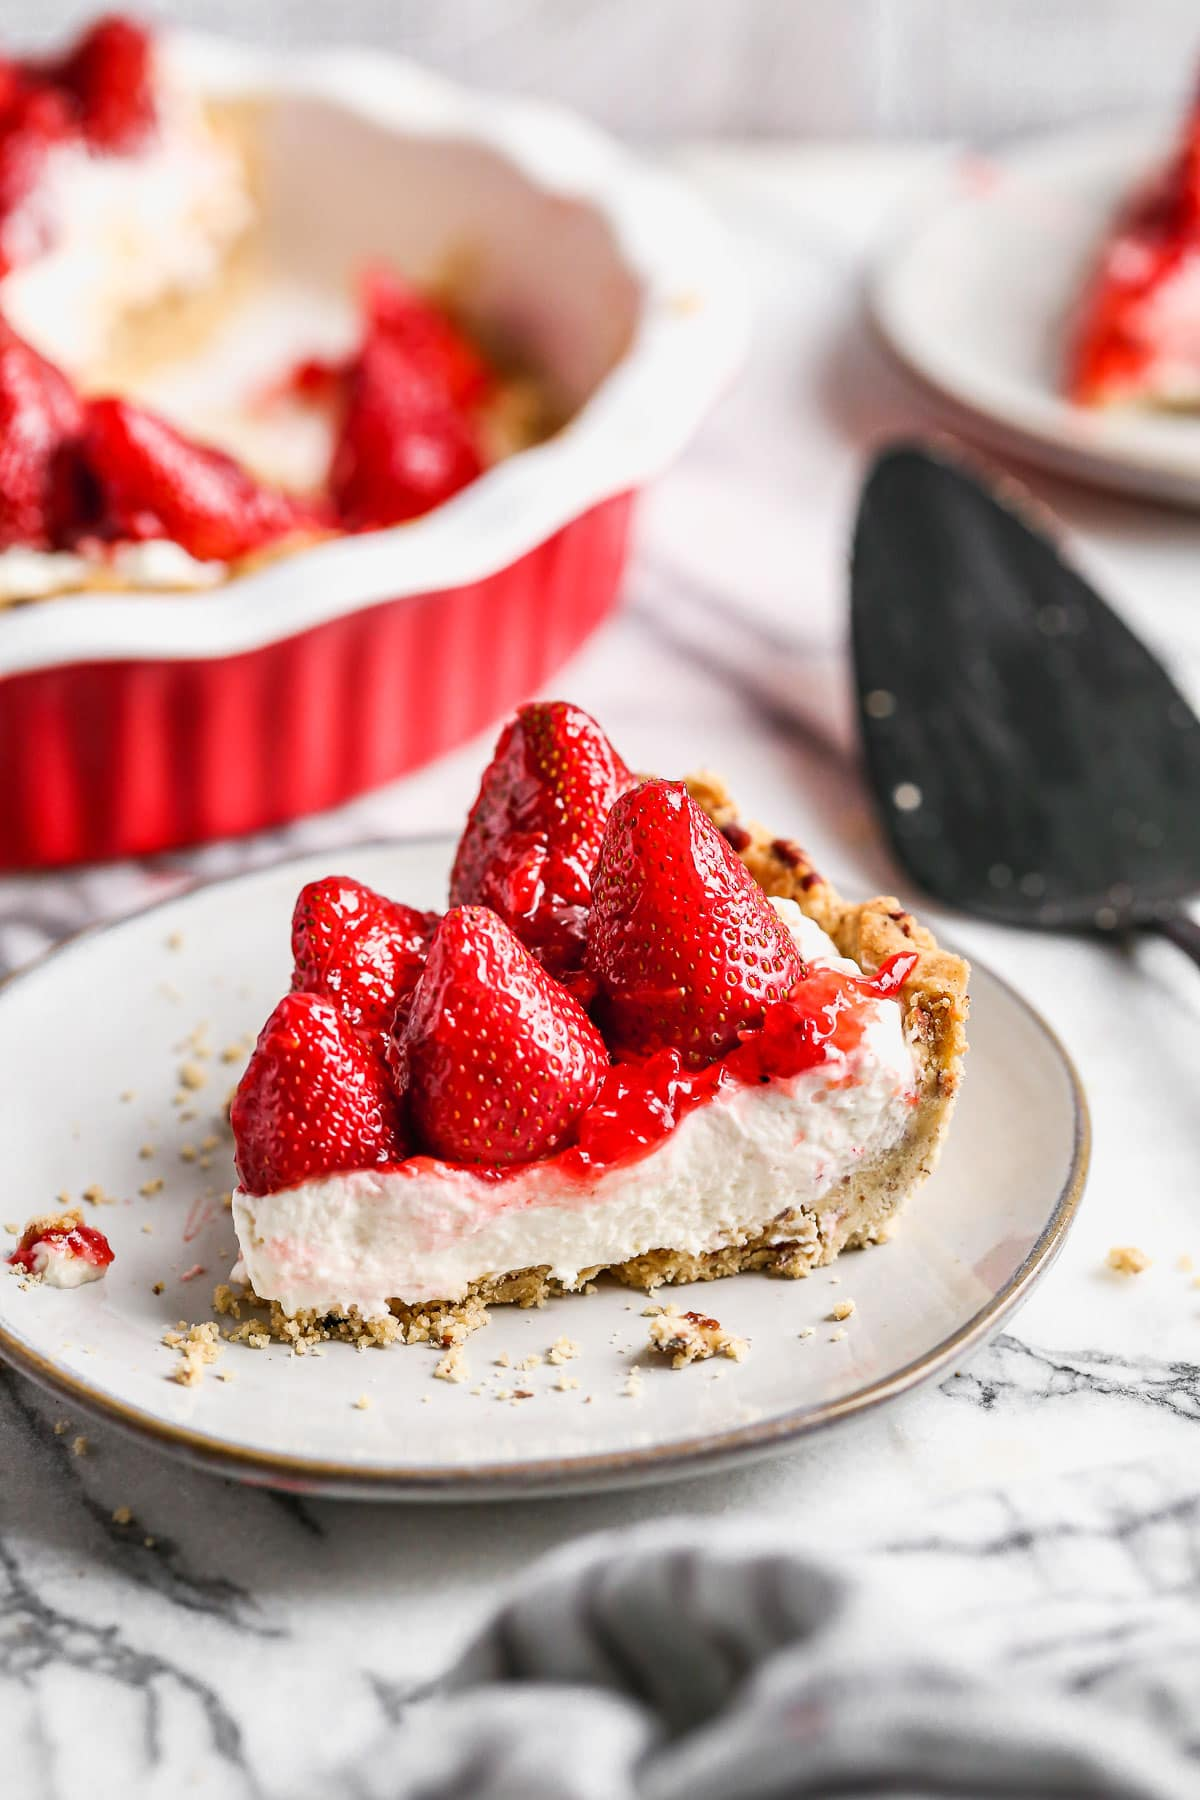 A slice of strawberry cream cheese pie on a plate